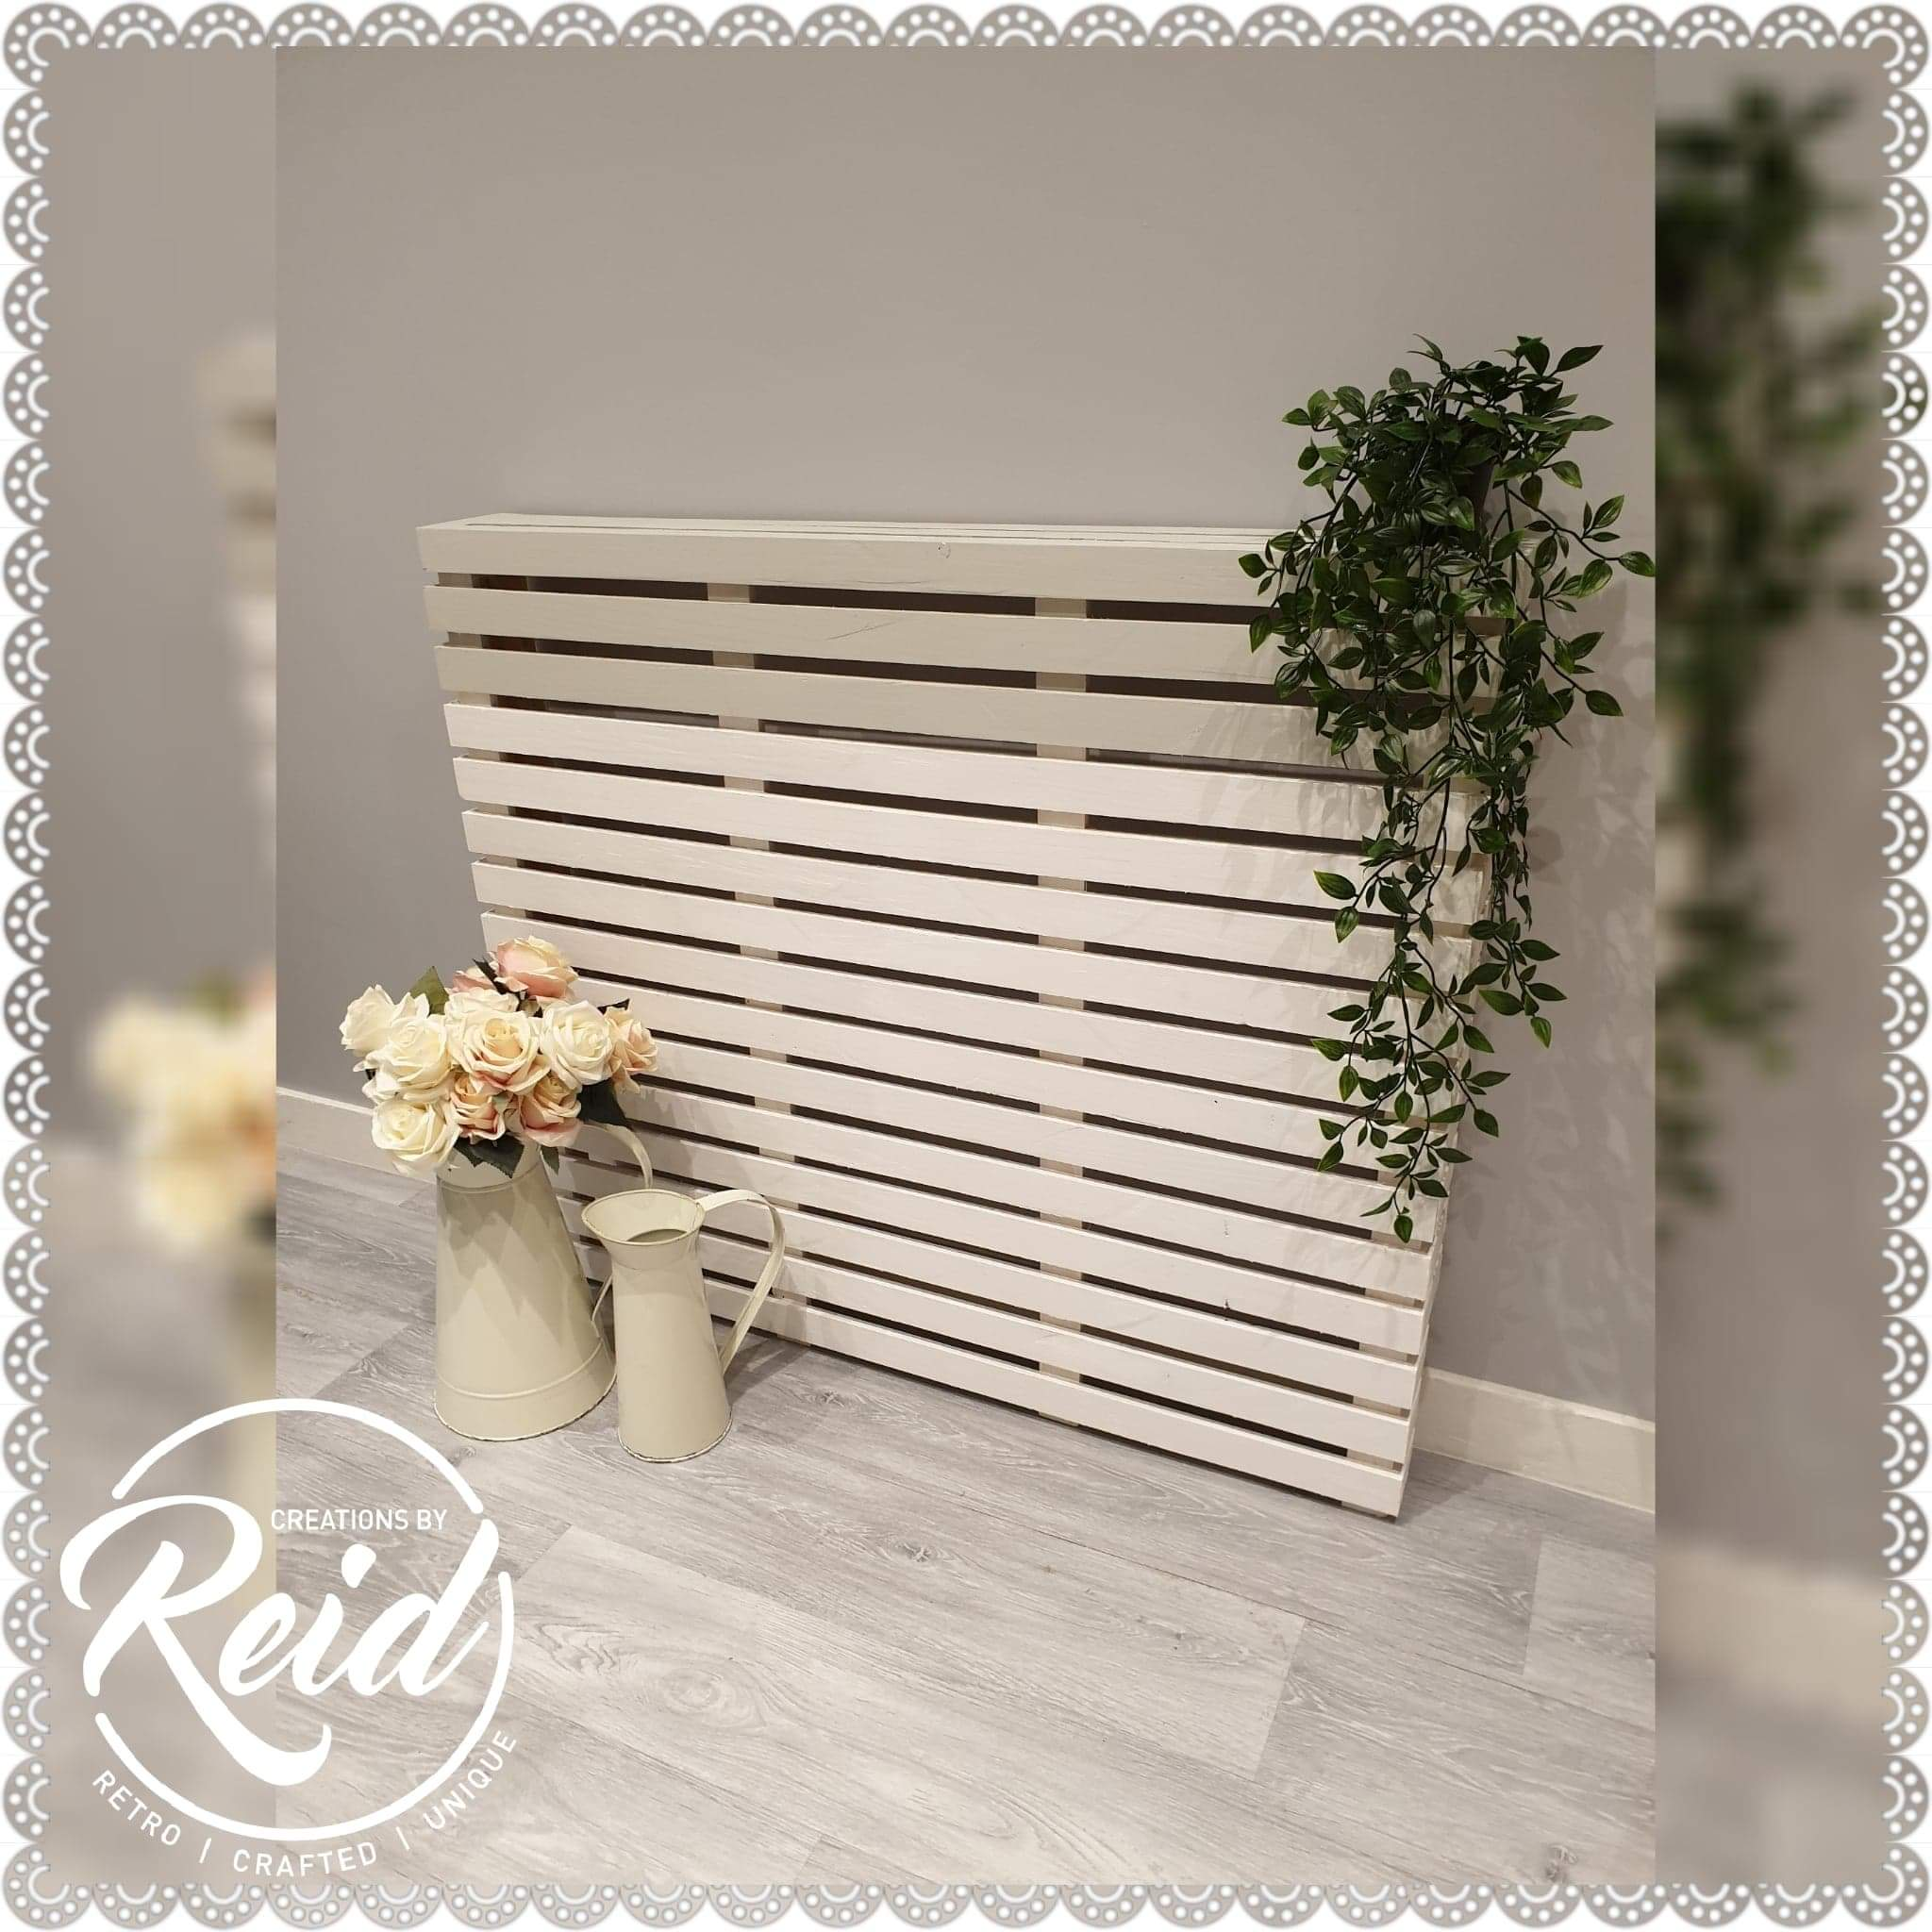 Small Medium Large Radiator Cover Horizontal Slats Numonday